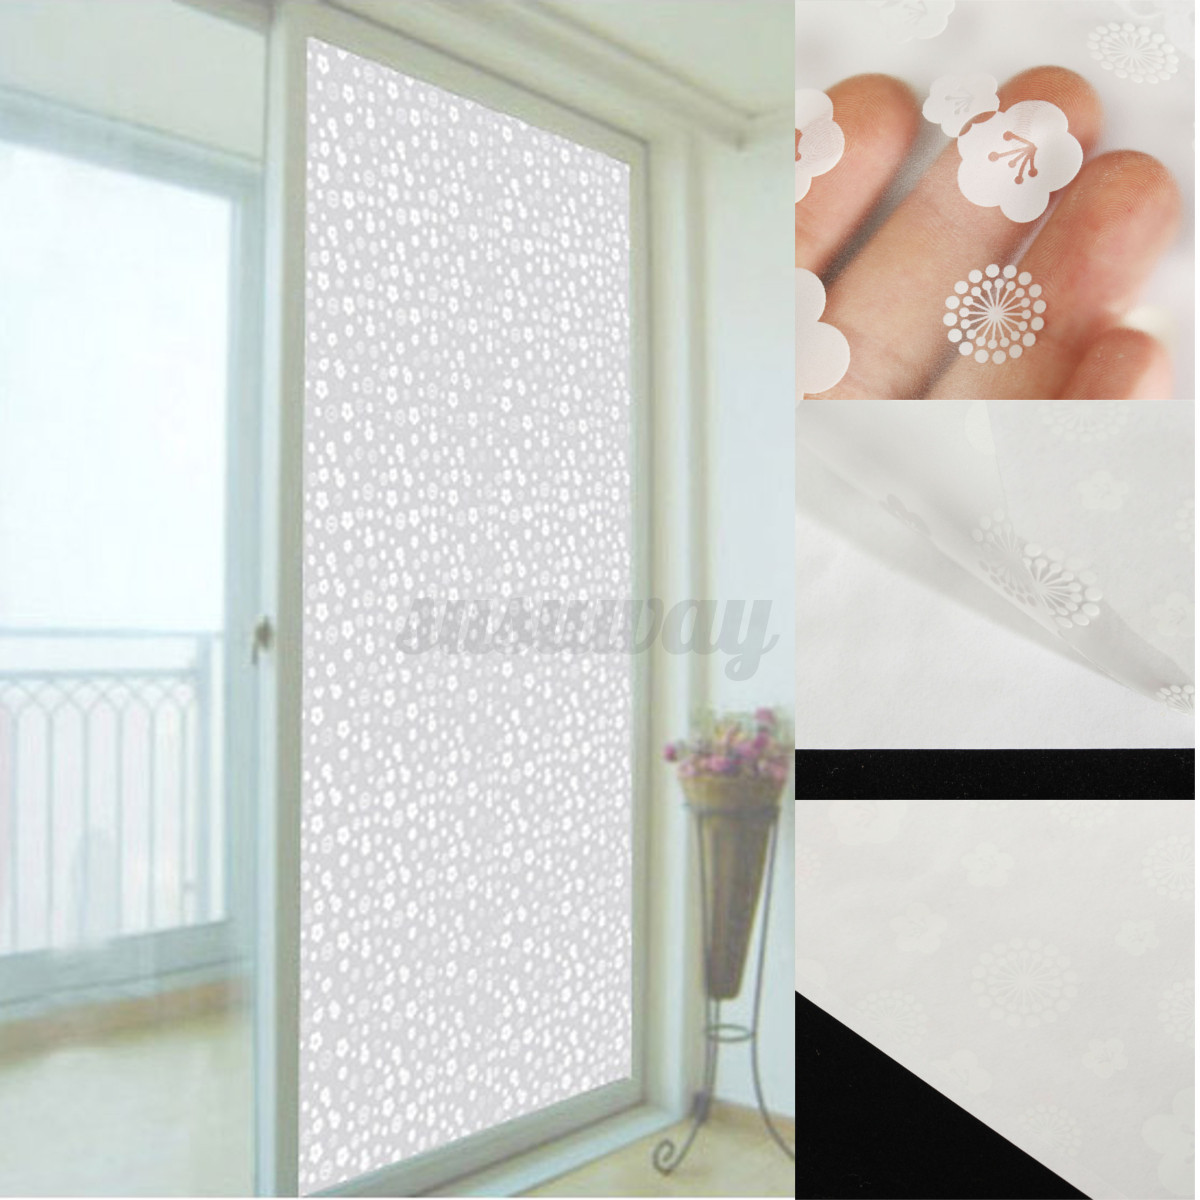 Self Adhesive Waterproof Bathroom Window Home Privacy Frosted Glass Film Sticker Ebay